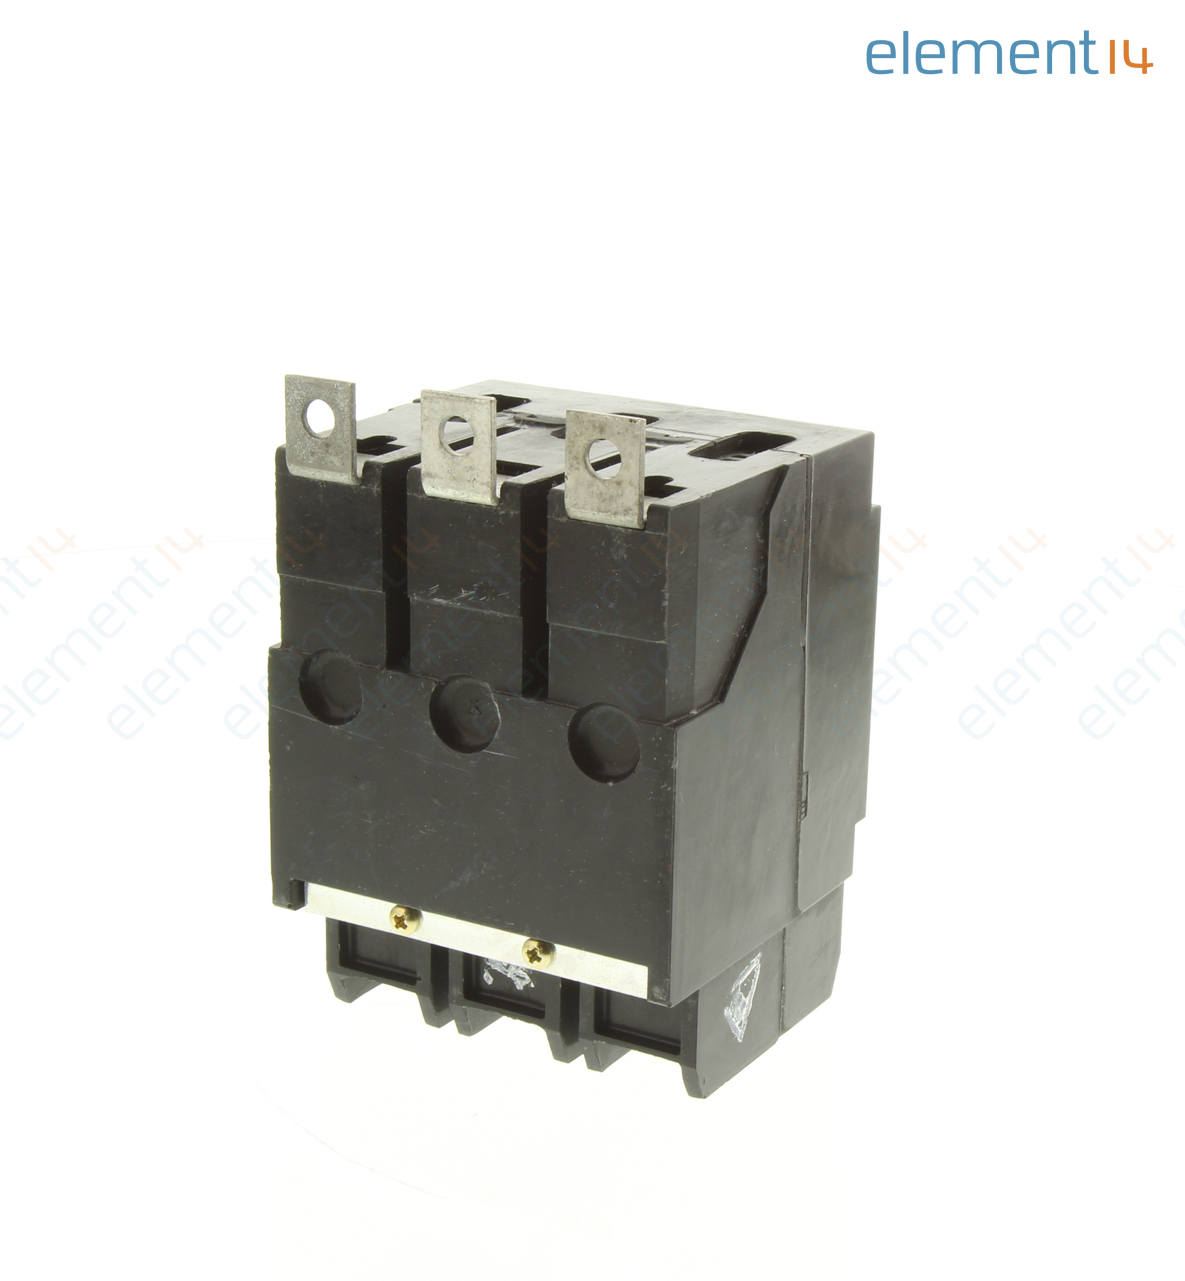 Ghb3100 Eaton Cutler Hammer Thermal Magnetic Circuit Breaker Add A To Compare